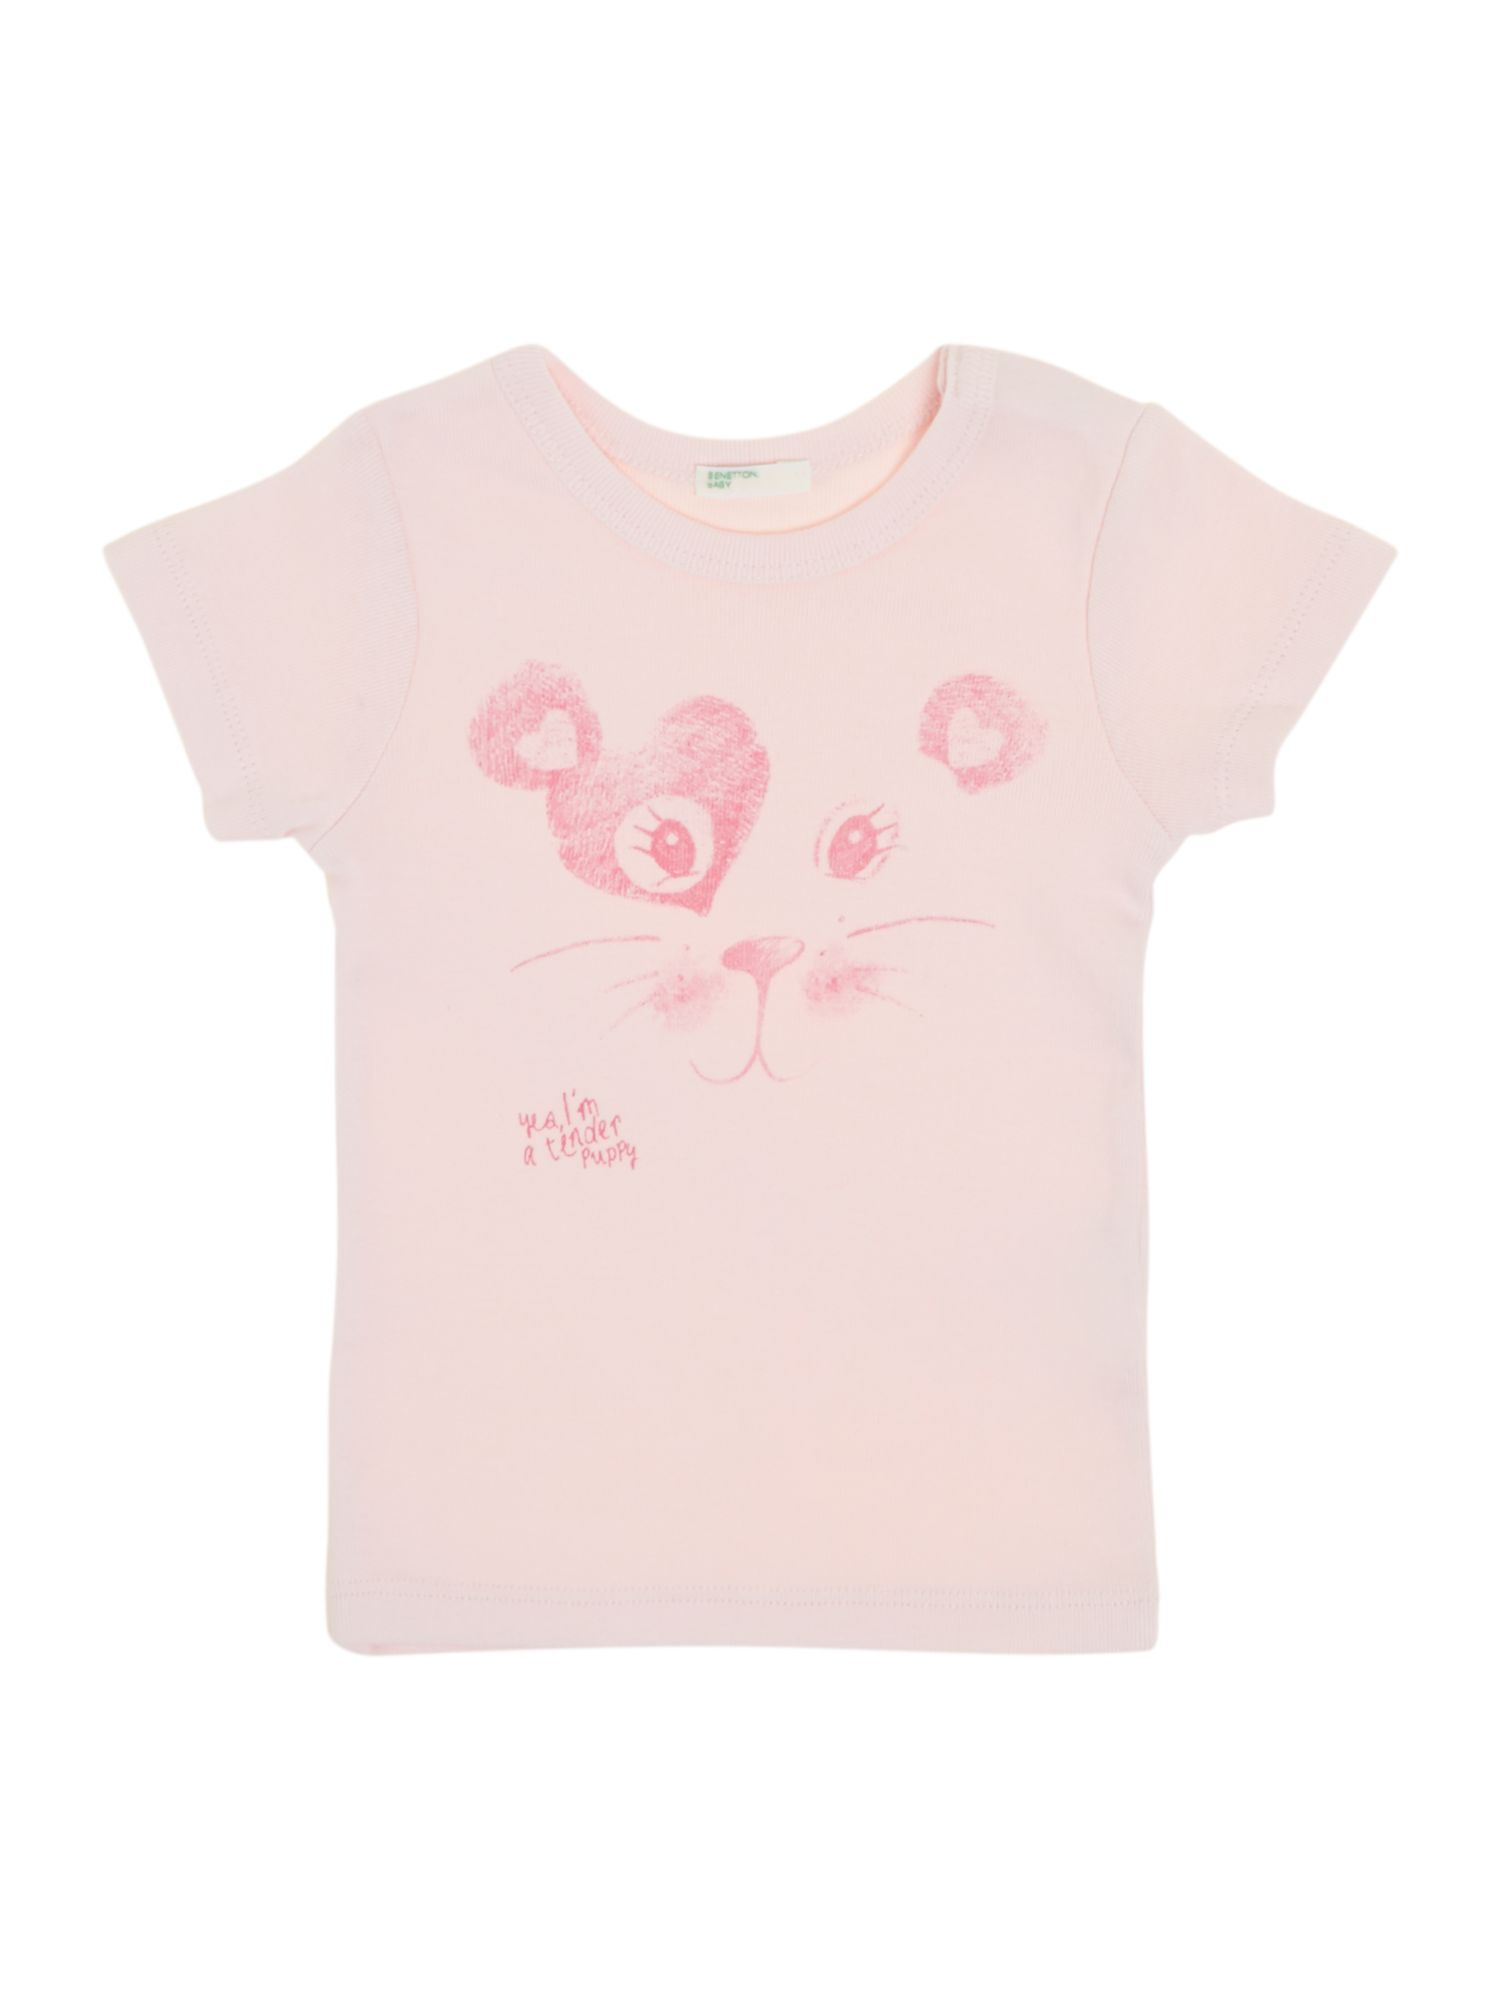 Girls cat print t-shirt